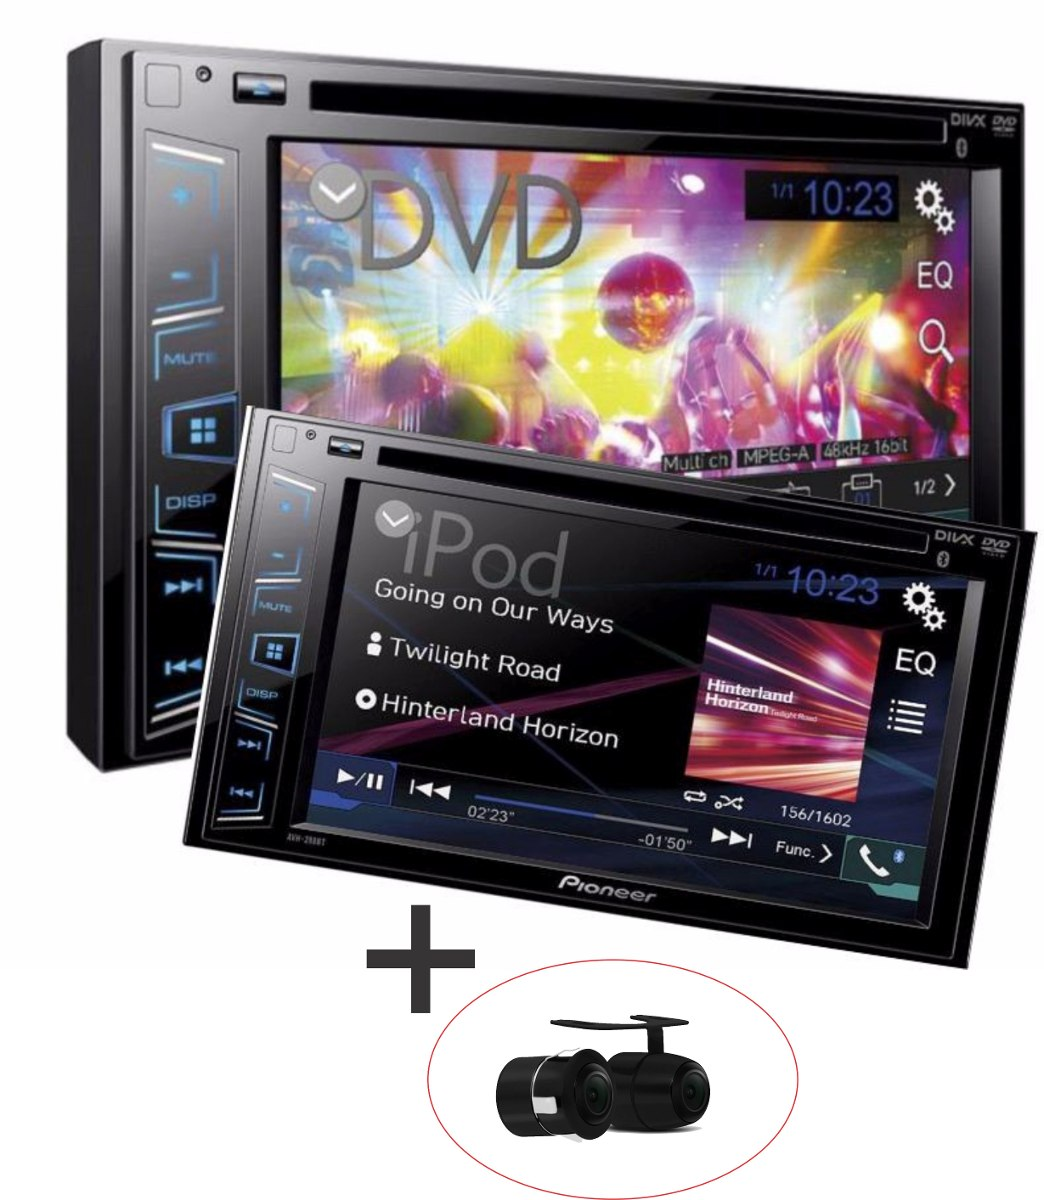 pioneer avh 288bt qual formato de video 95 dodge ram 1500 starter wiring diagram dvd player bluetooth tela 6 1 usb